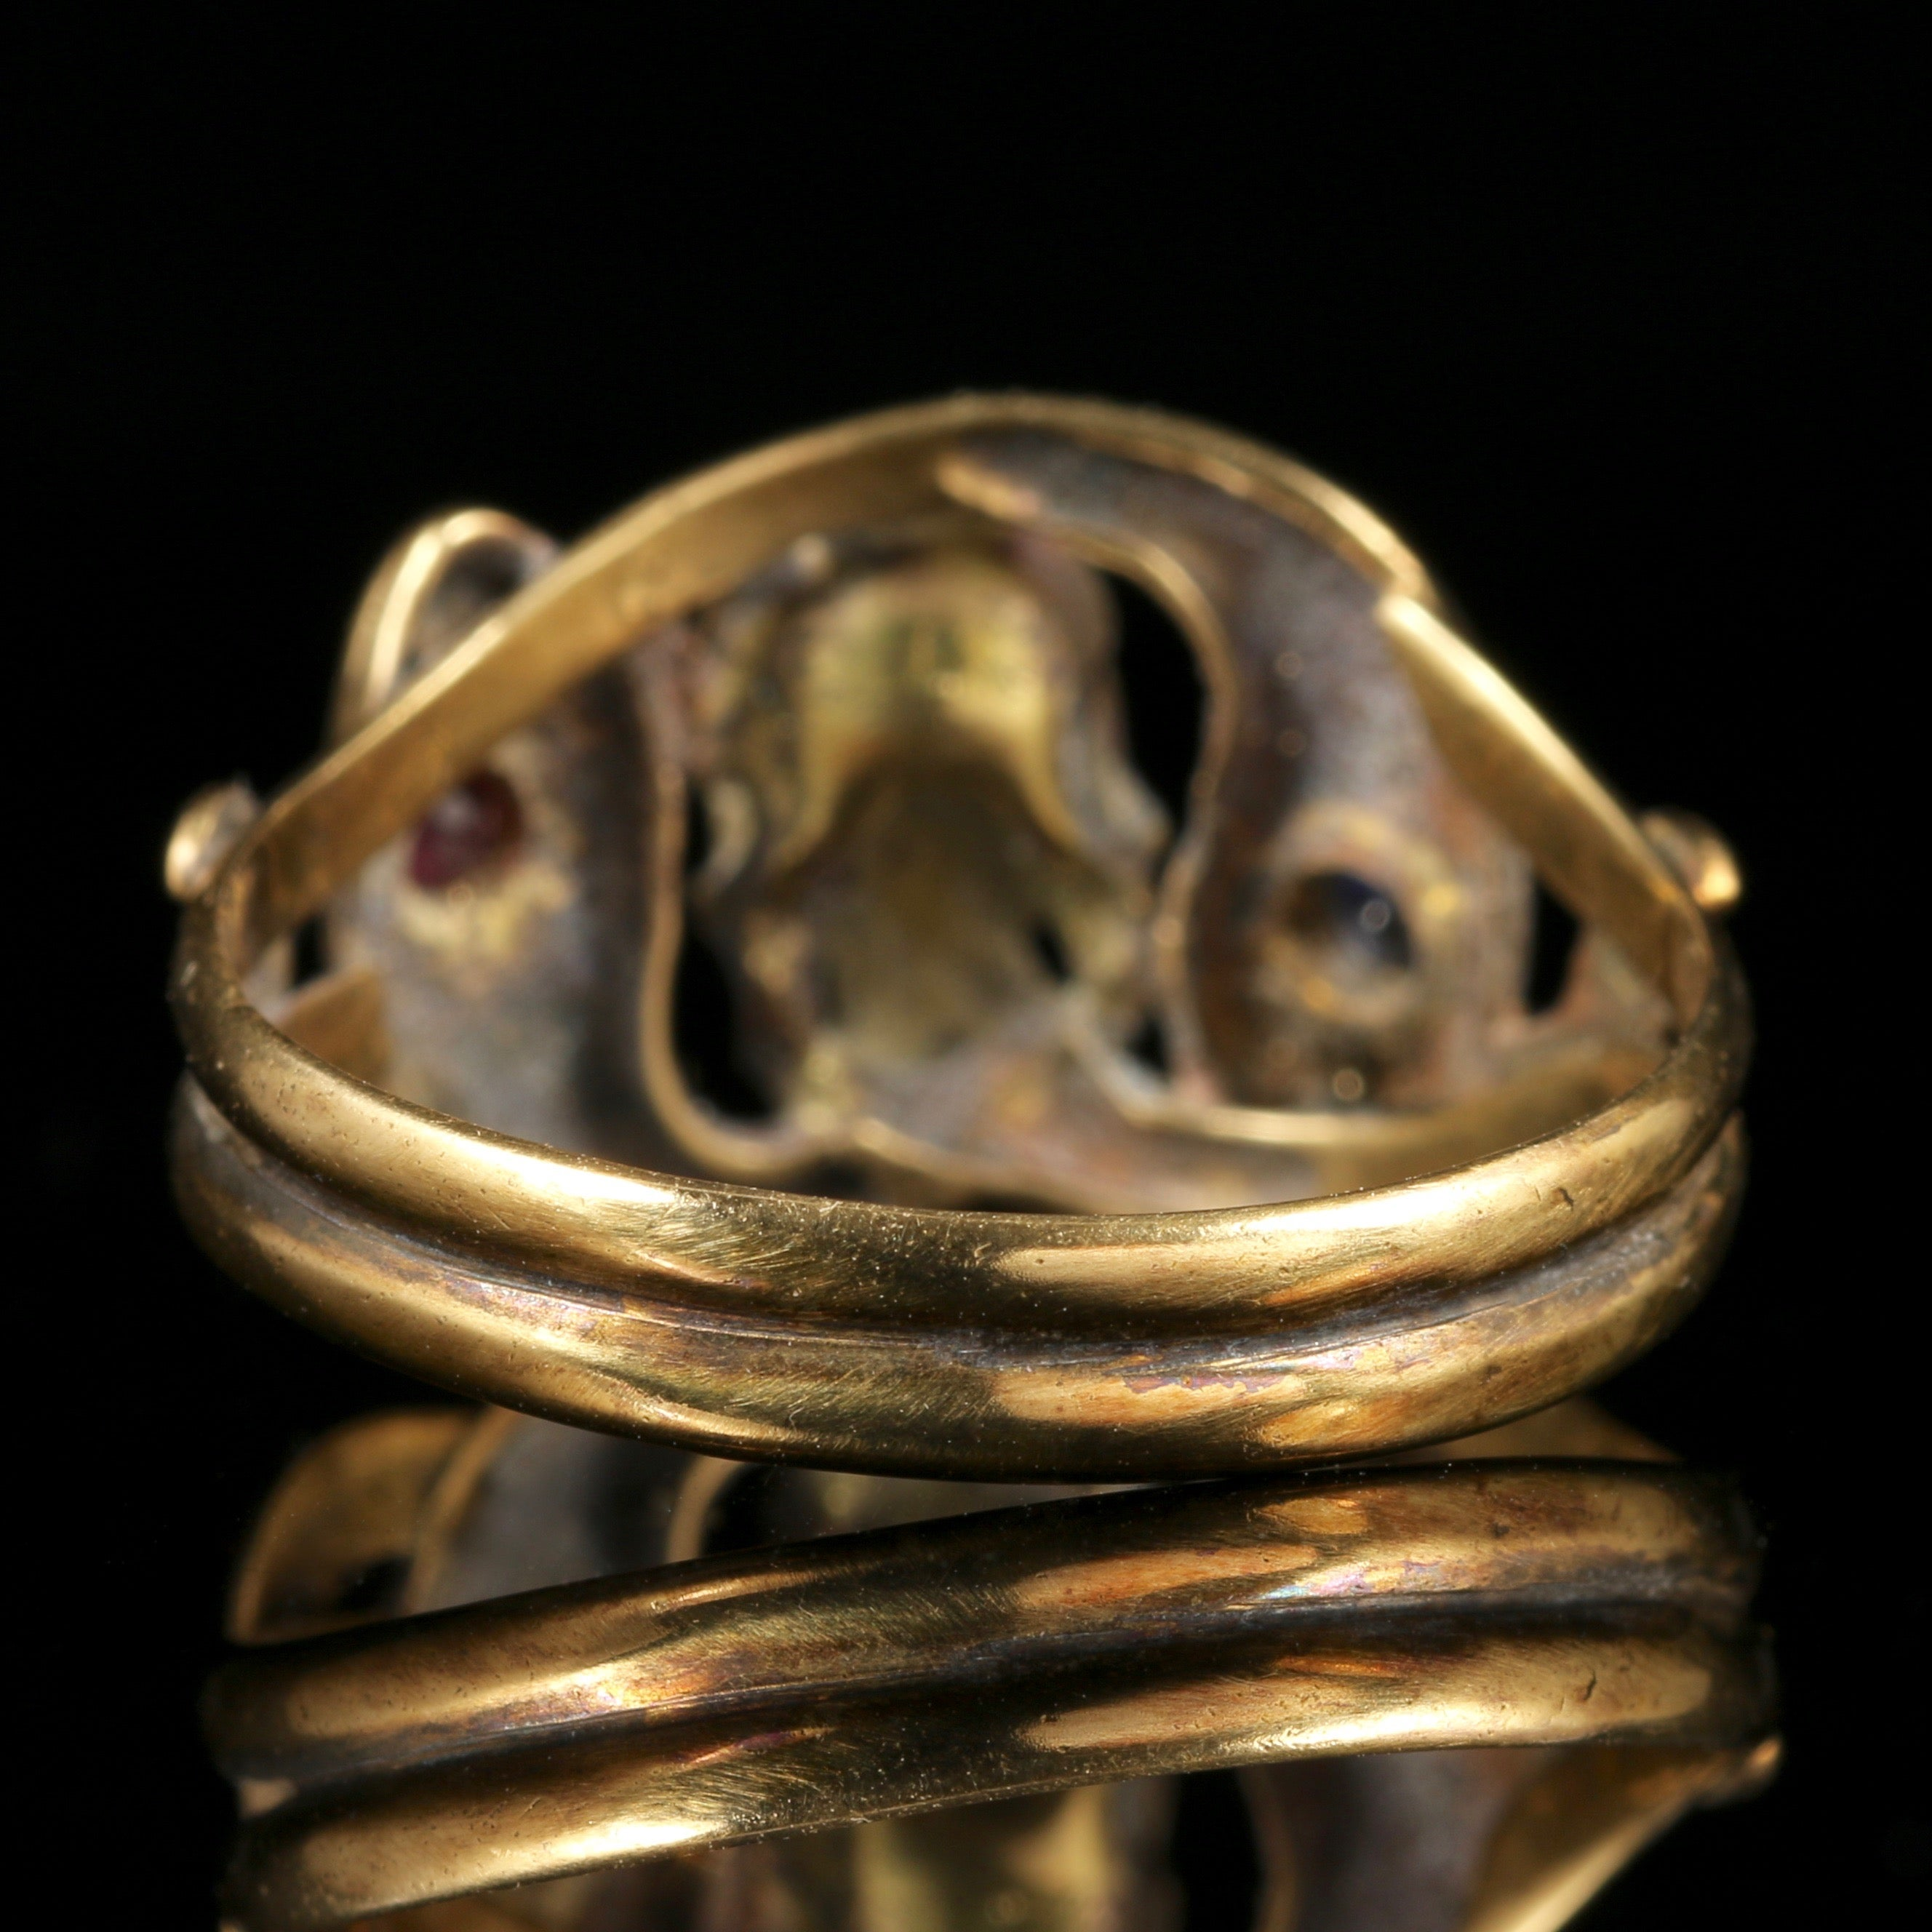 schmuckwerk x ring profil rings ovalem gold engagement shop oval mit profile bronze with de noble